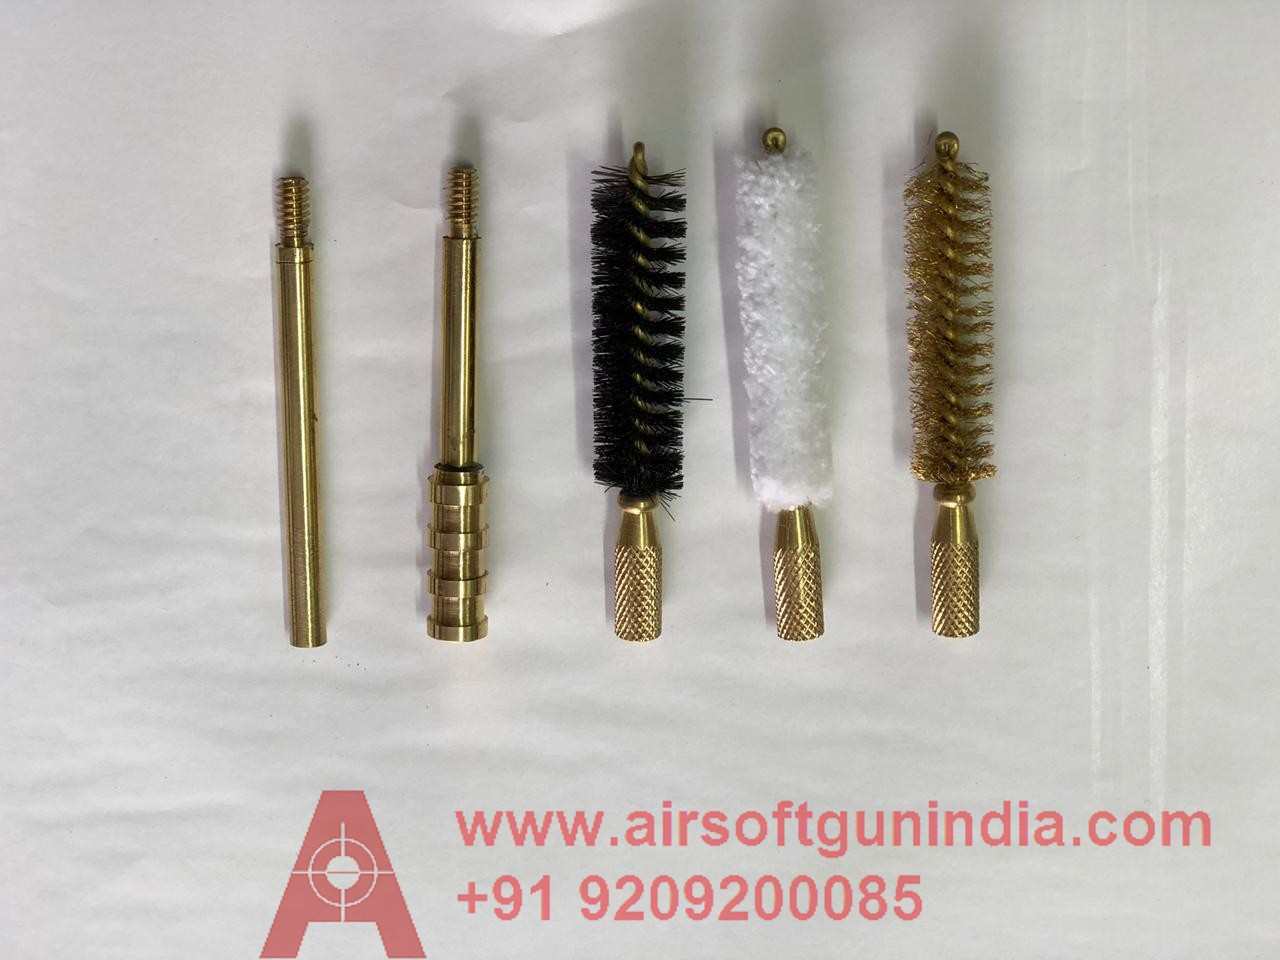 Gun Cleaning Kit For 32 Bore By Airsoft Gun India